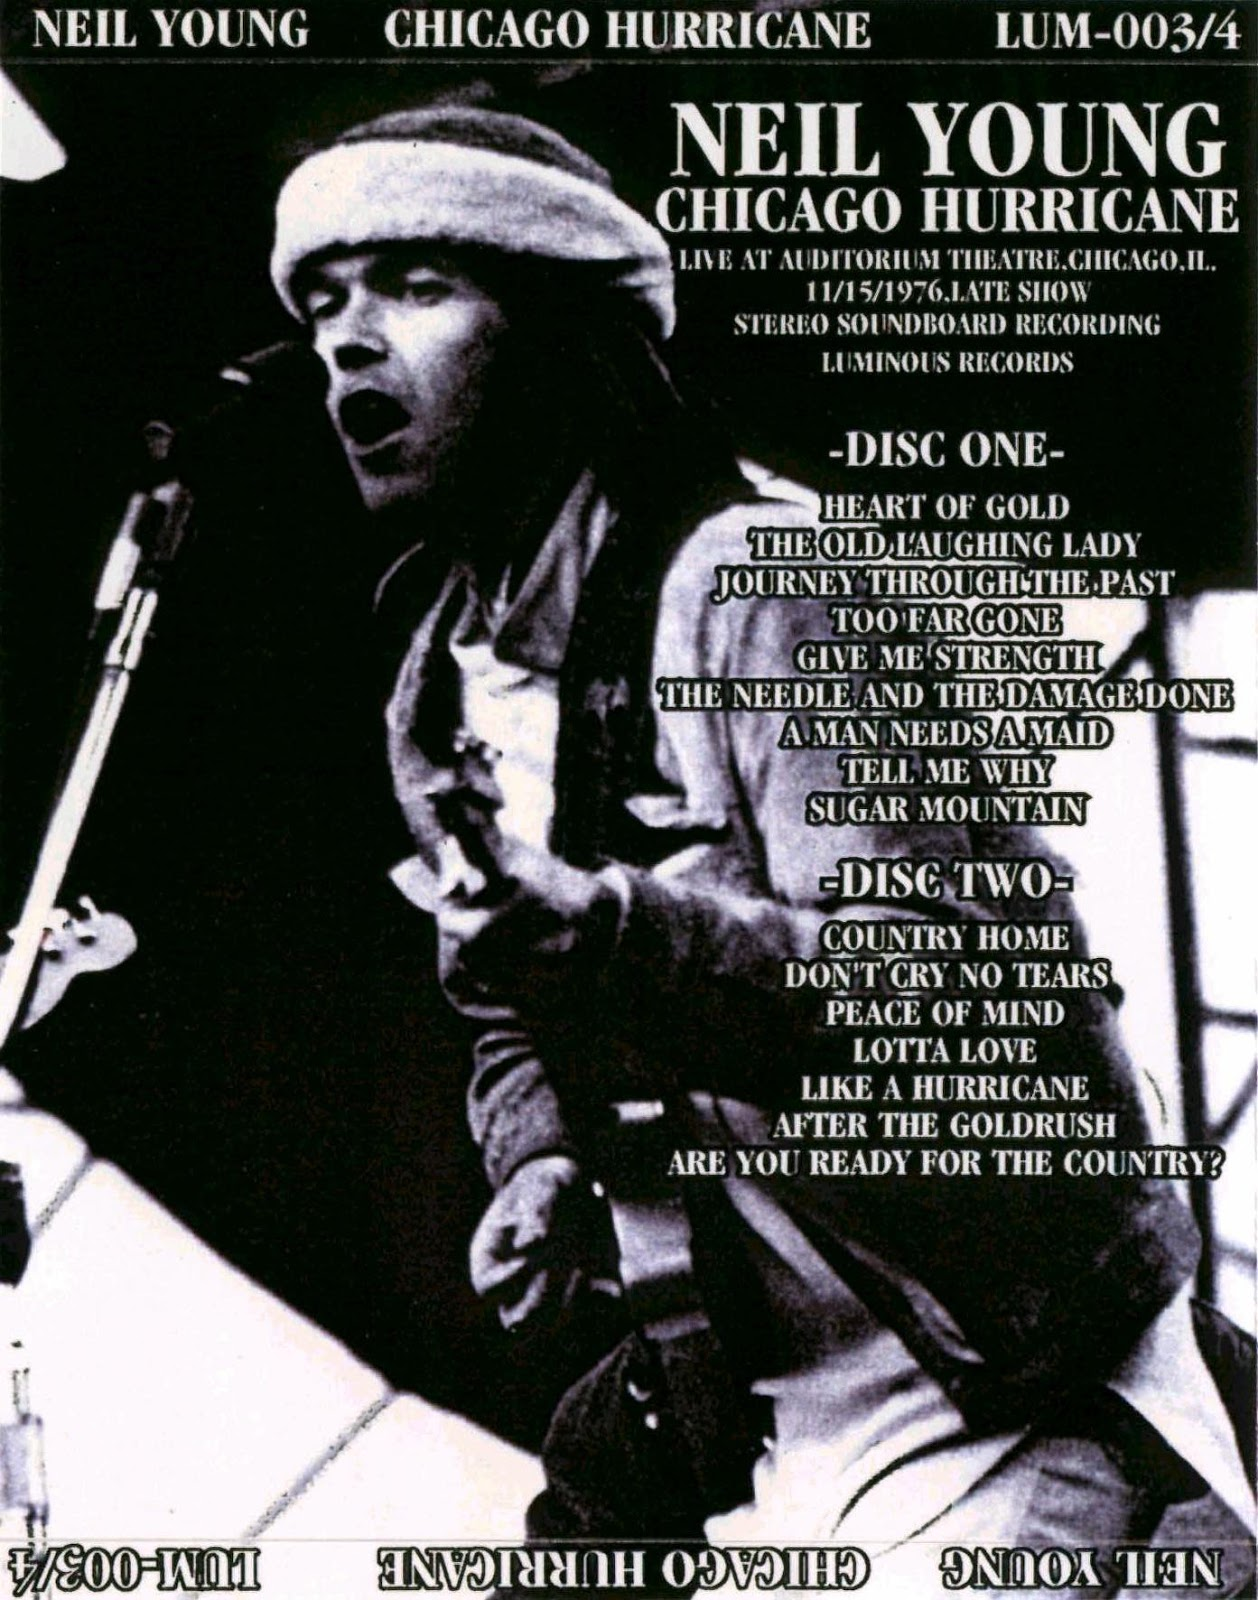 Reliquary: Neil Young [1976.11.15] Chicago Hurricane [SBD]